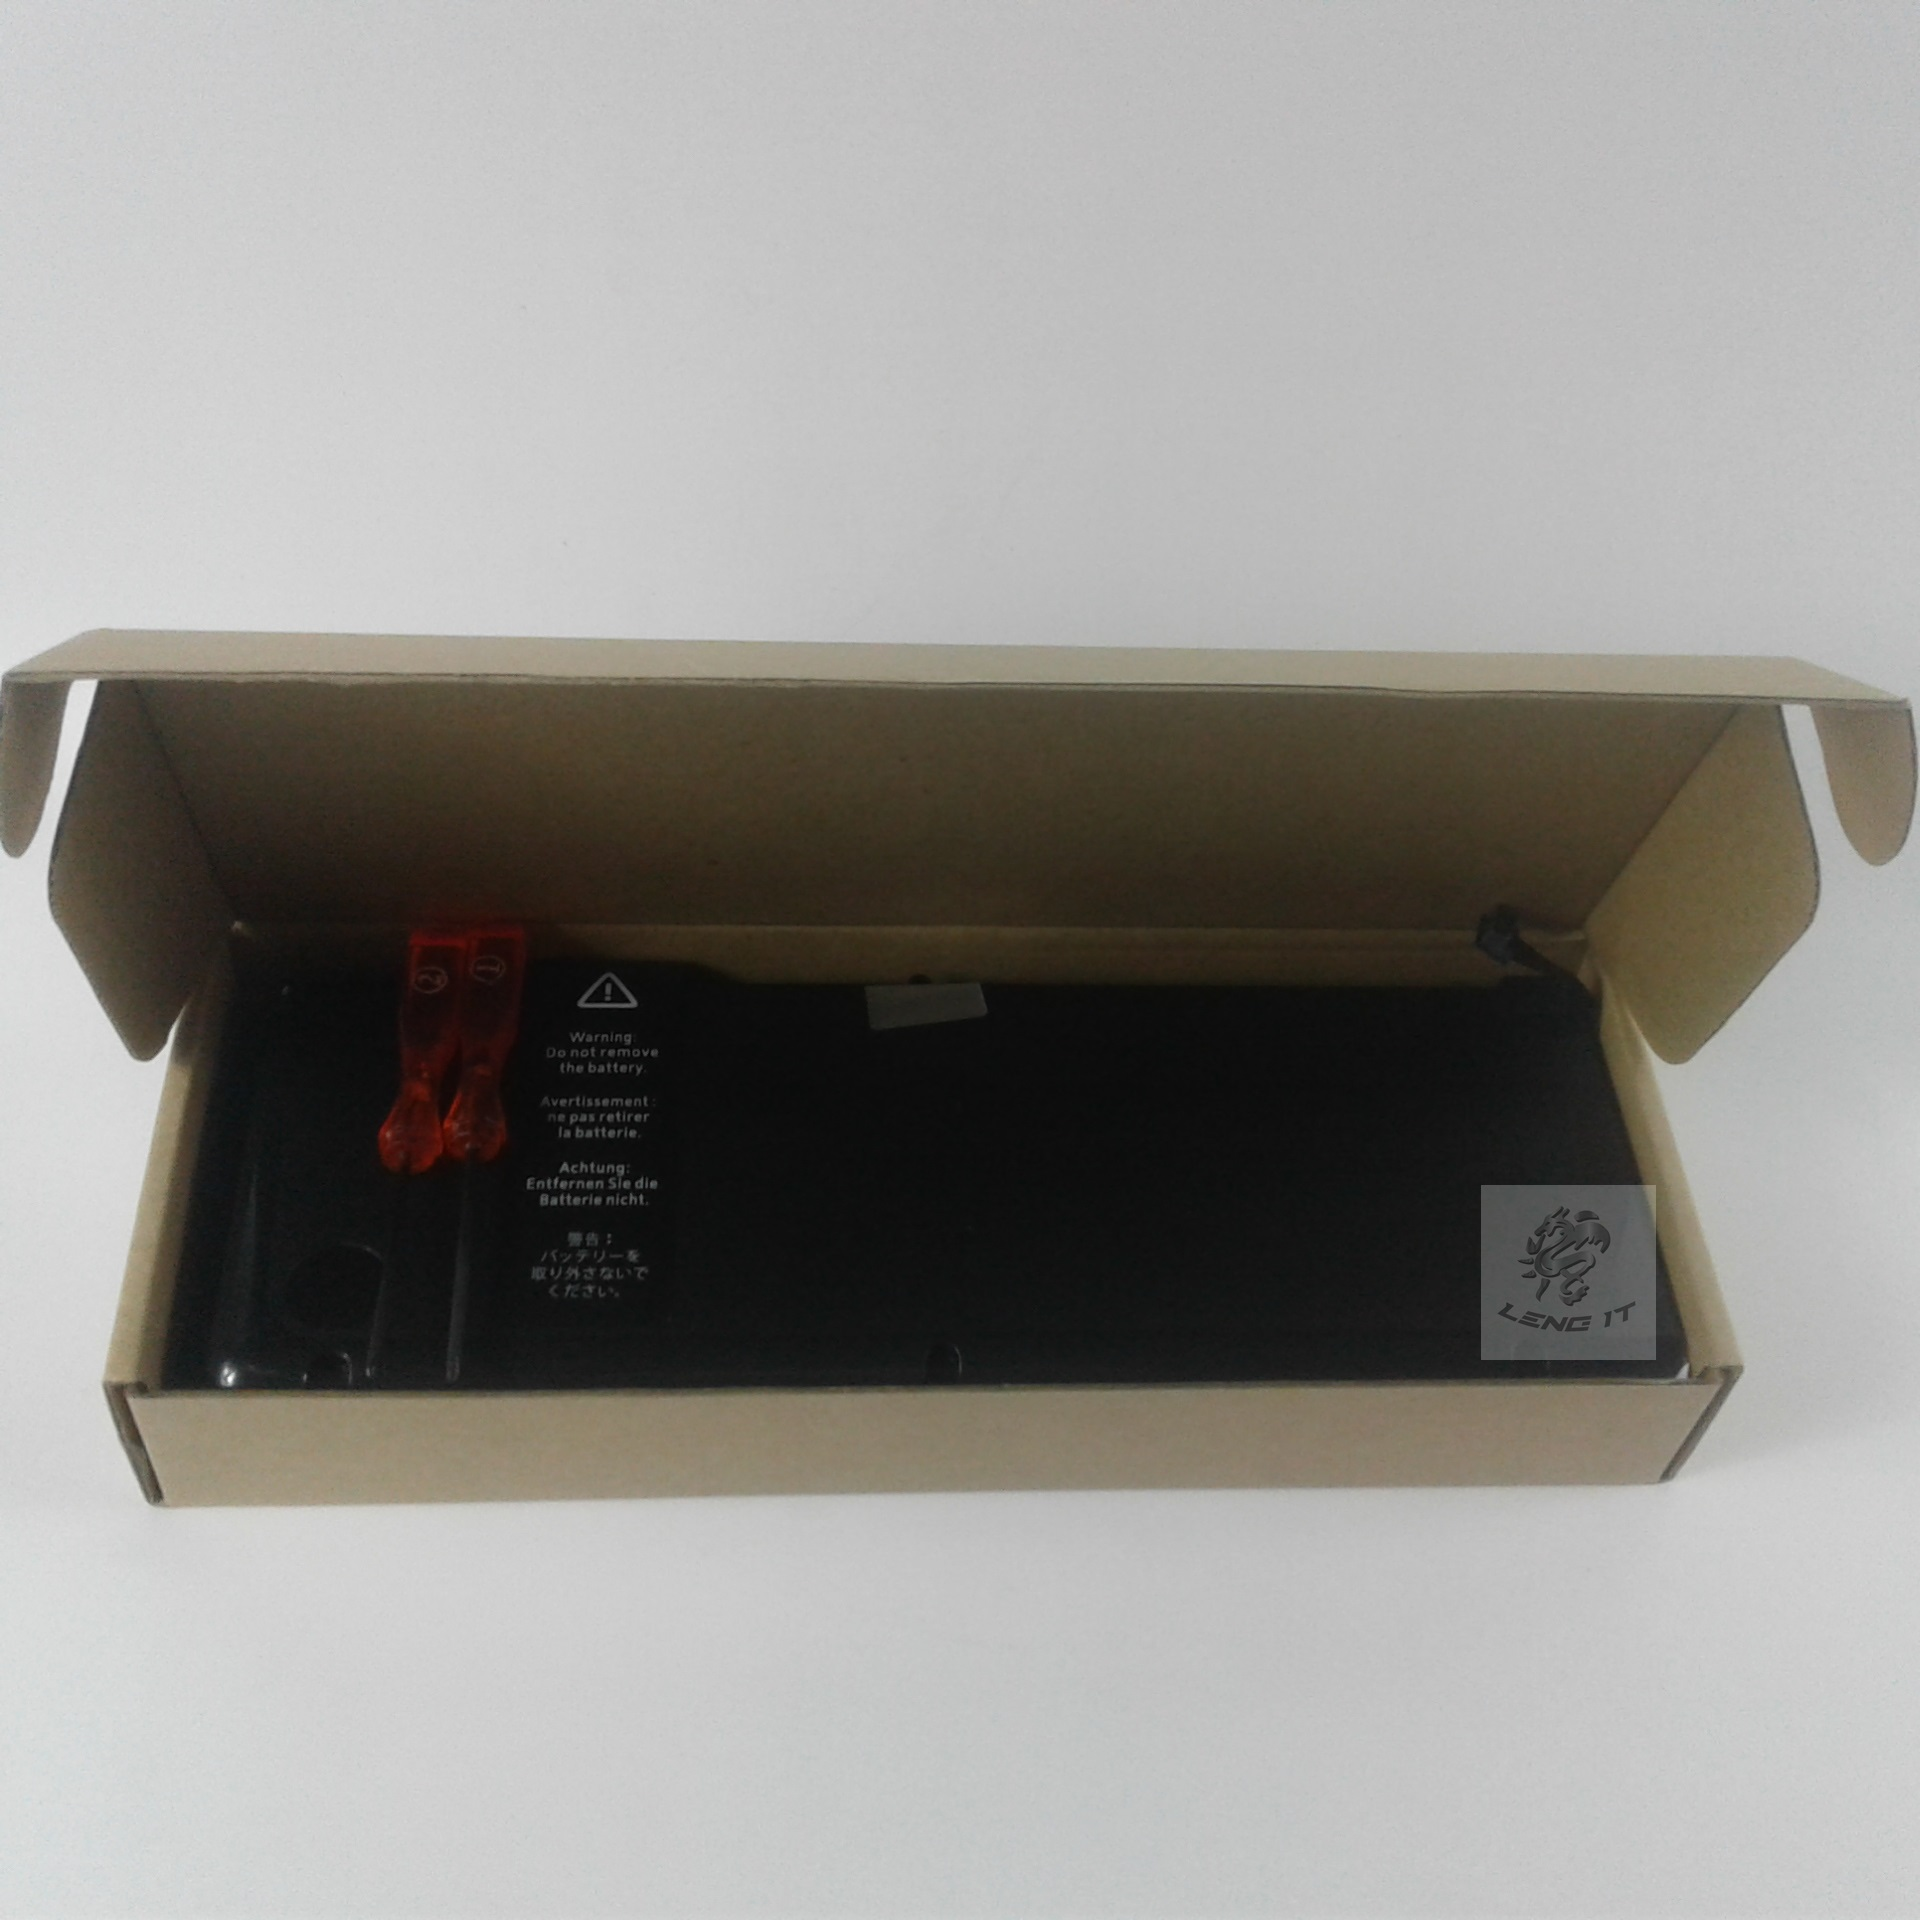 Battery For Apple MacBook Pro 17 A1383 A1297